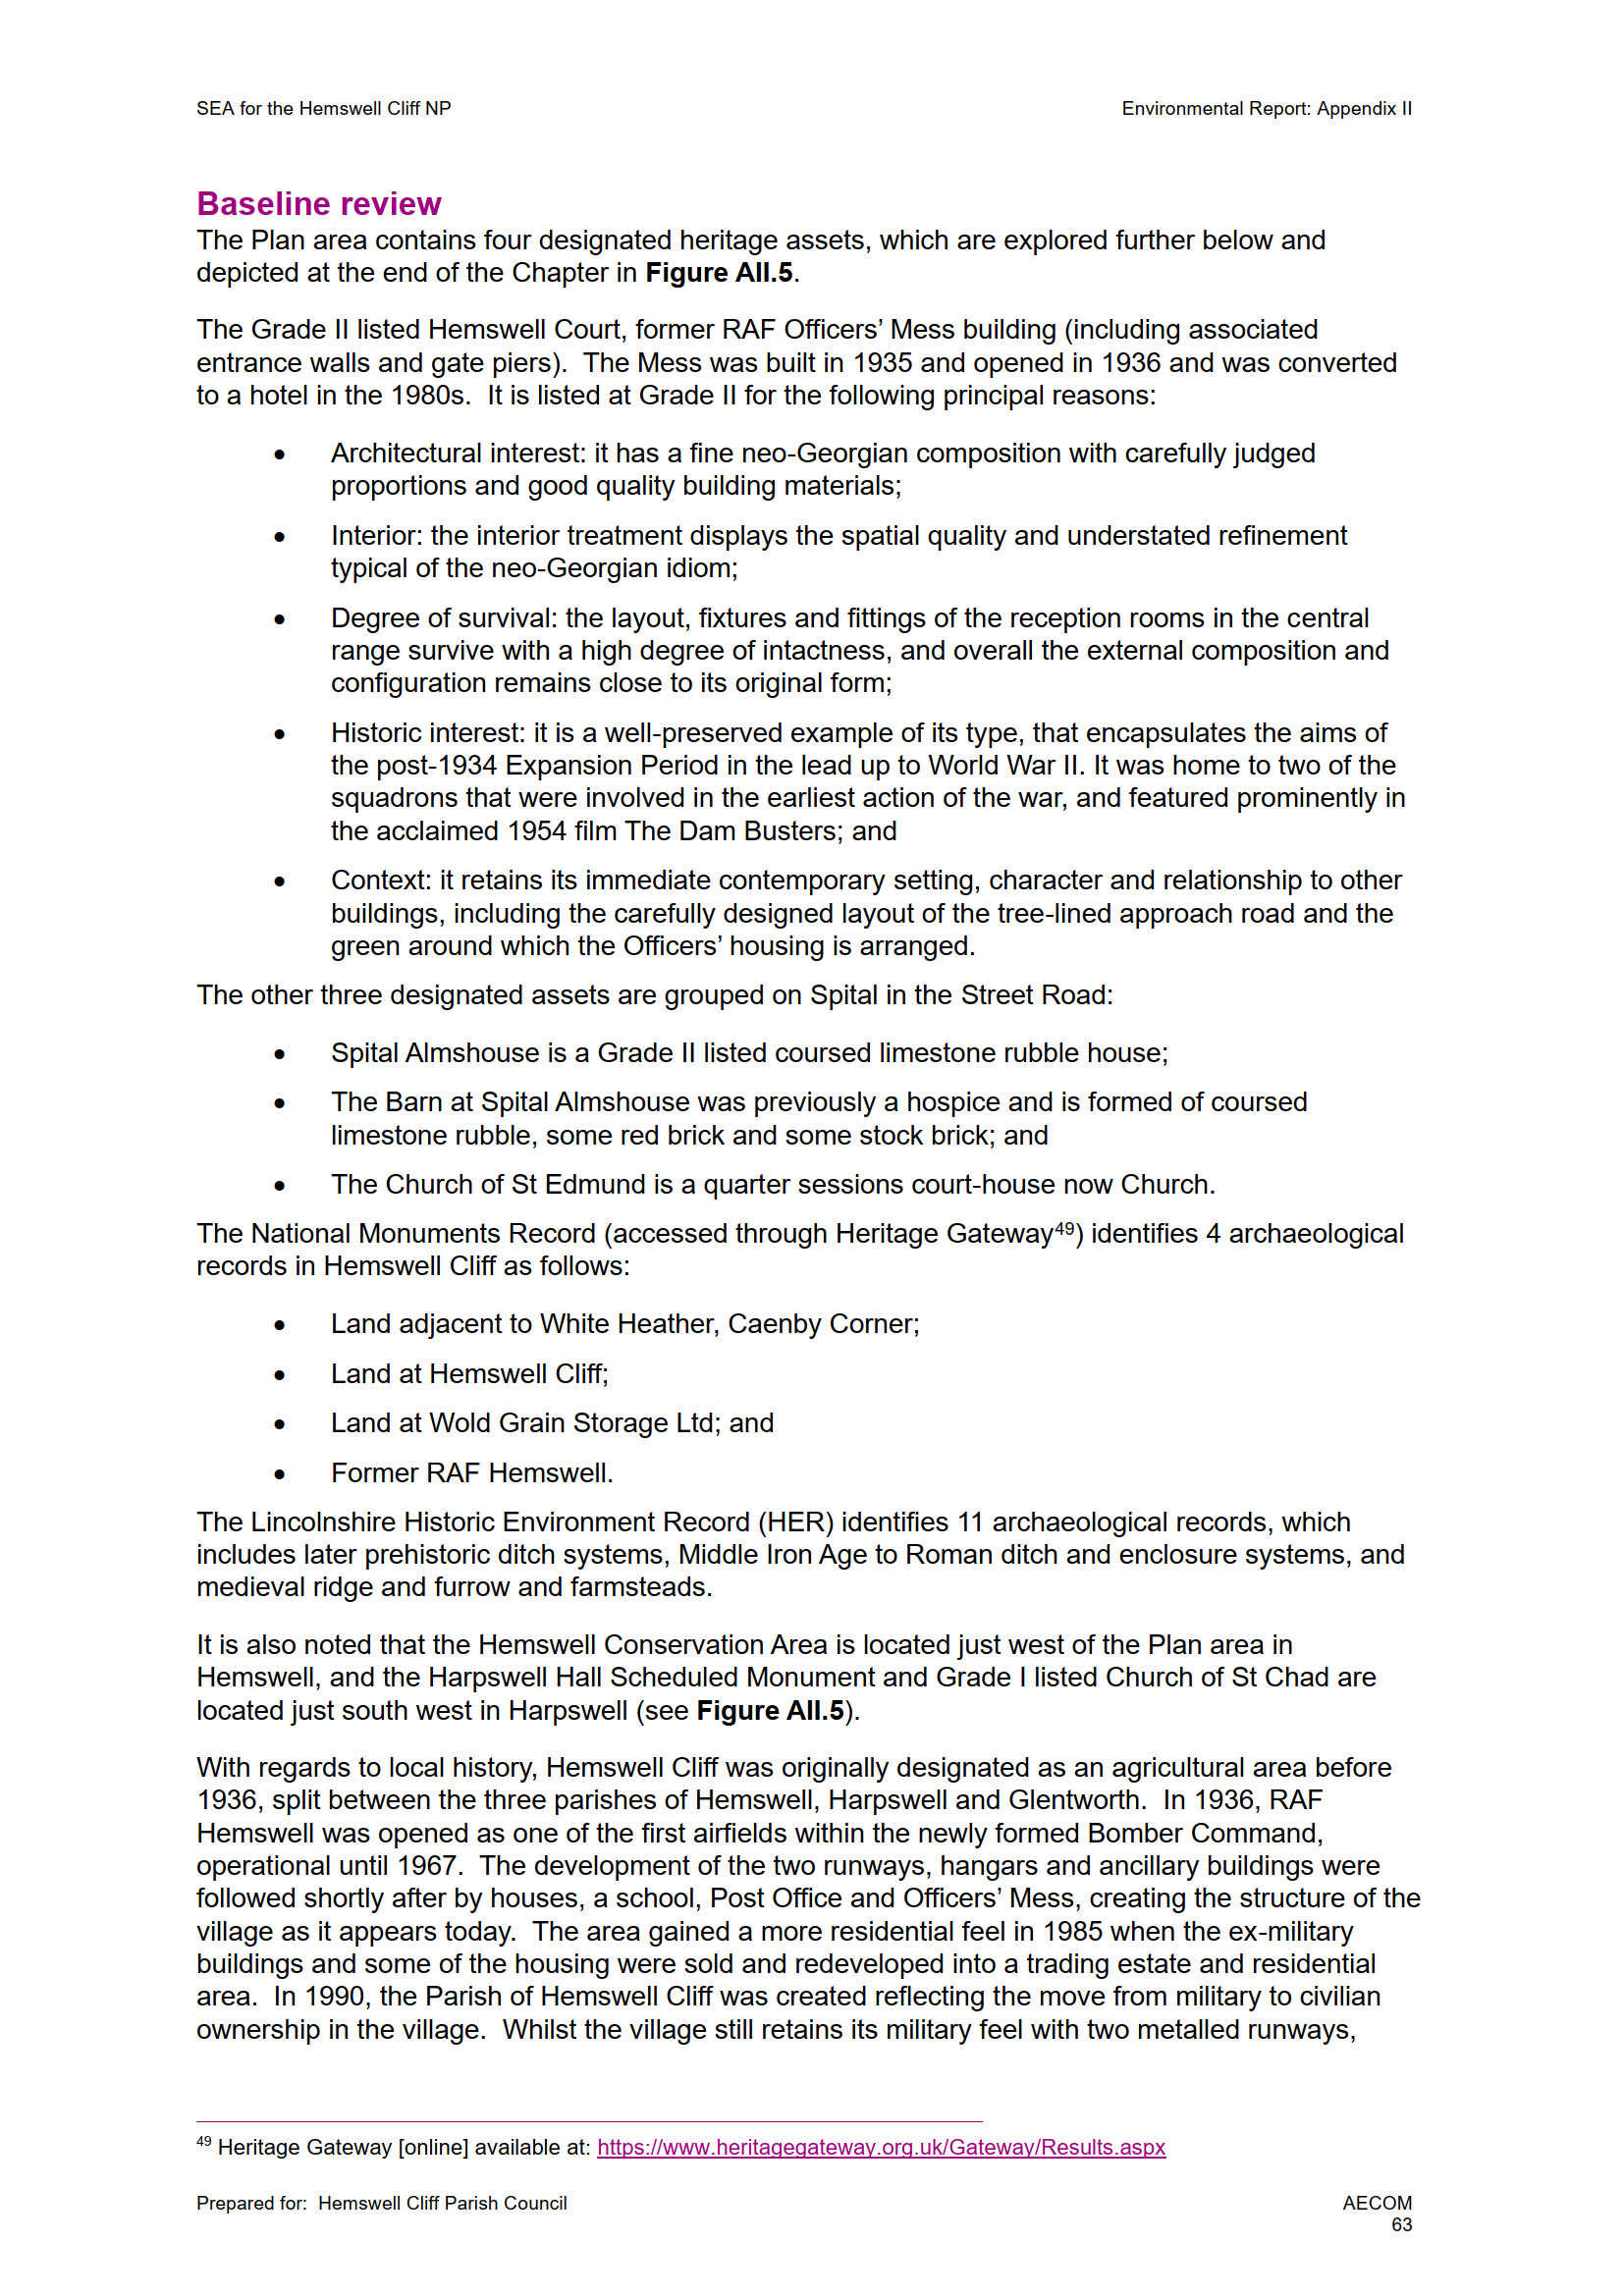 Hemswell_Cliff_SEA_ER_V3_final_draft__published_version_with_chap_7_added_April_version_71.png